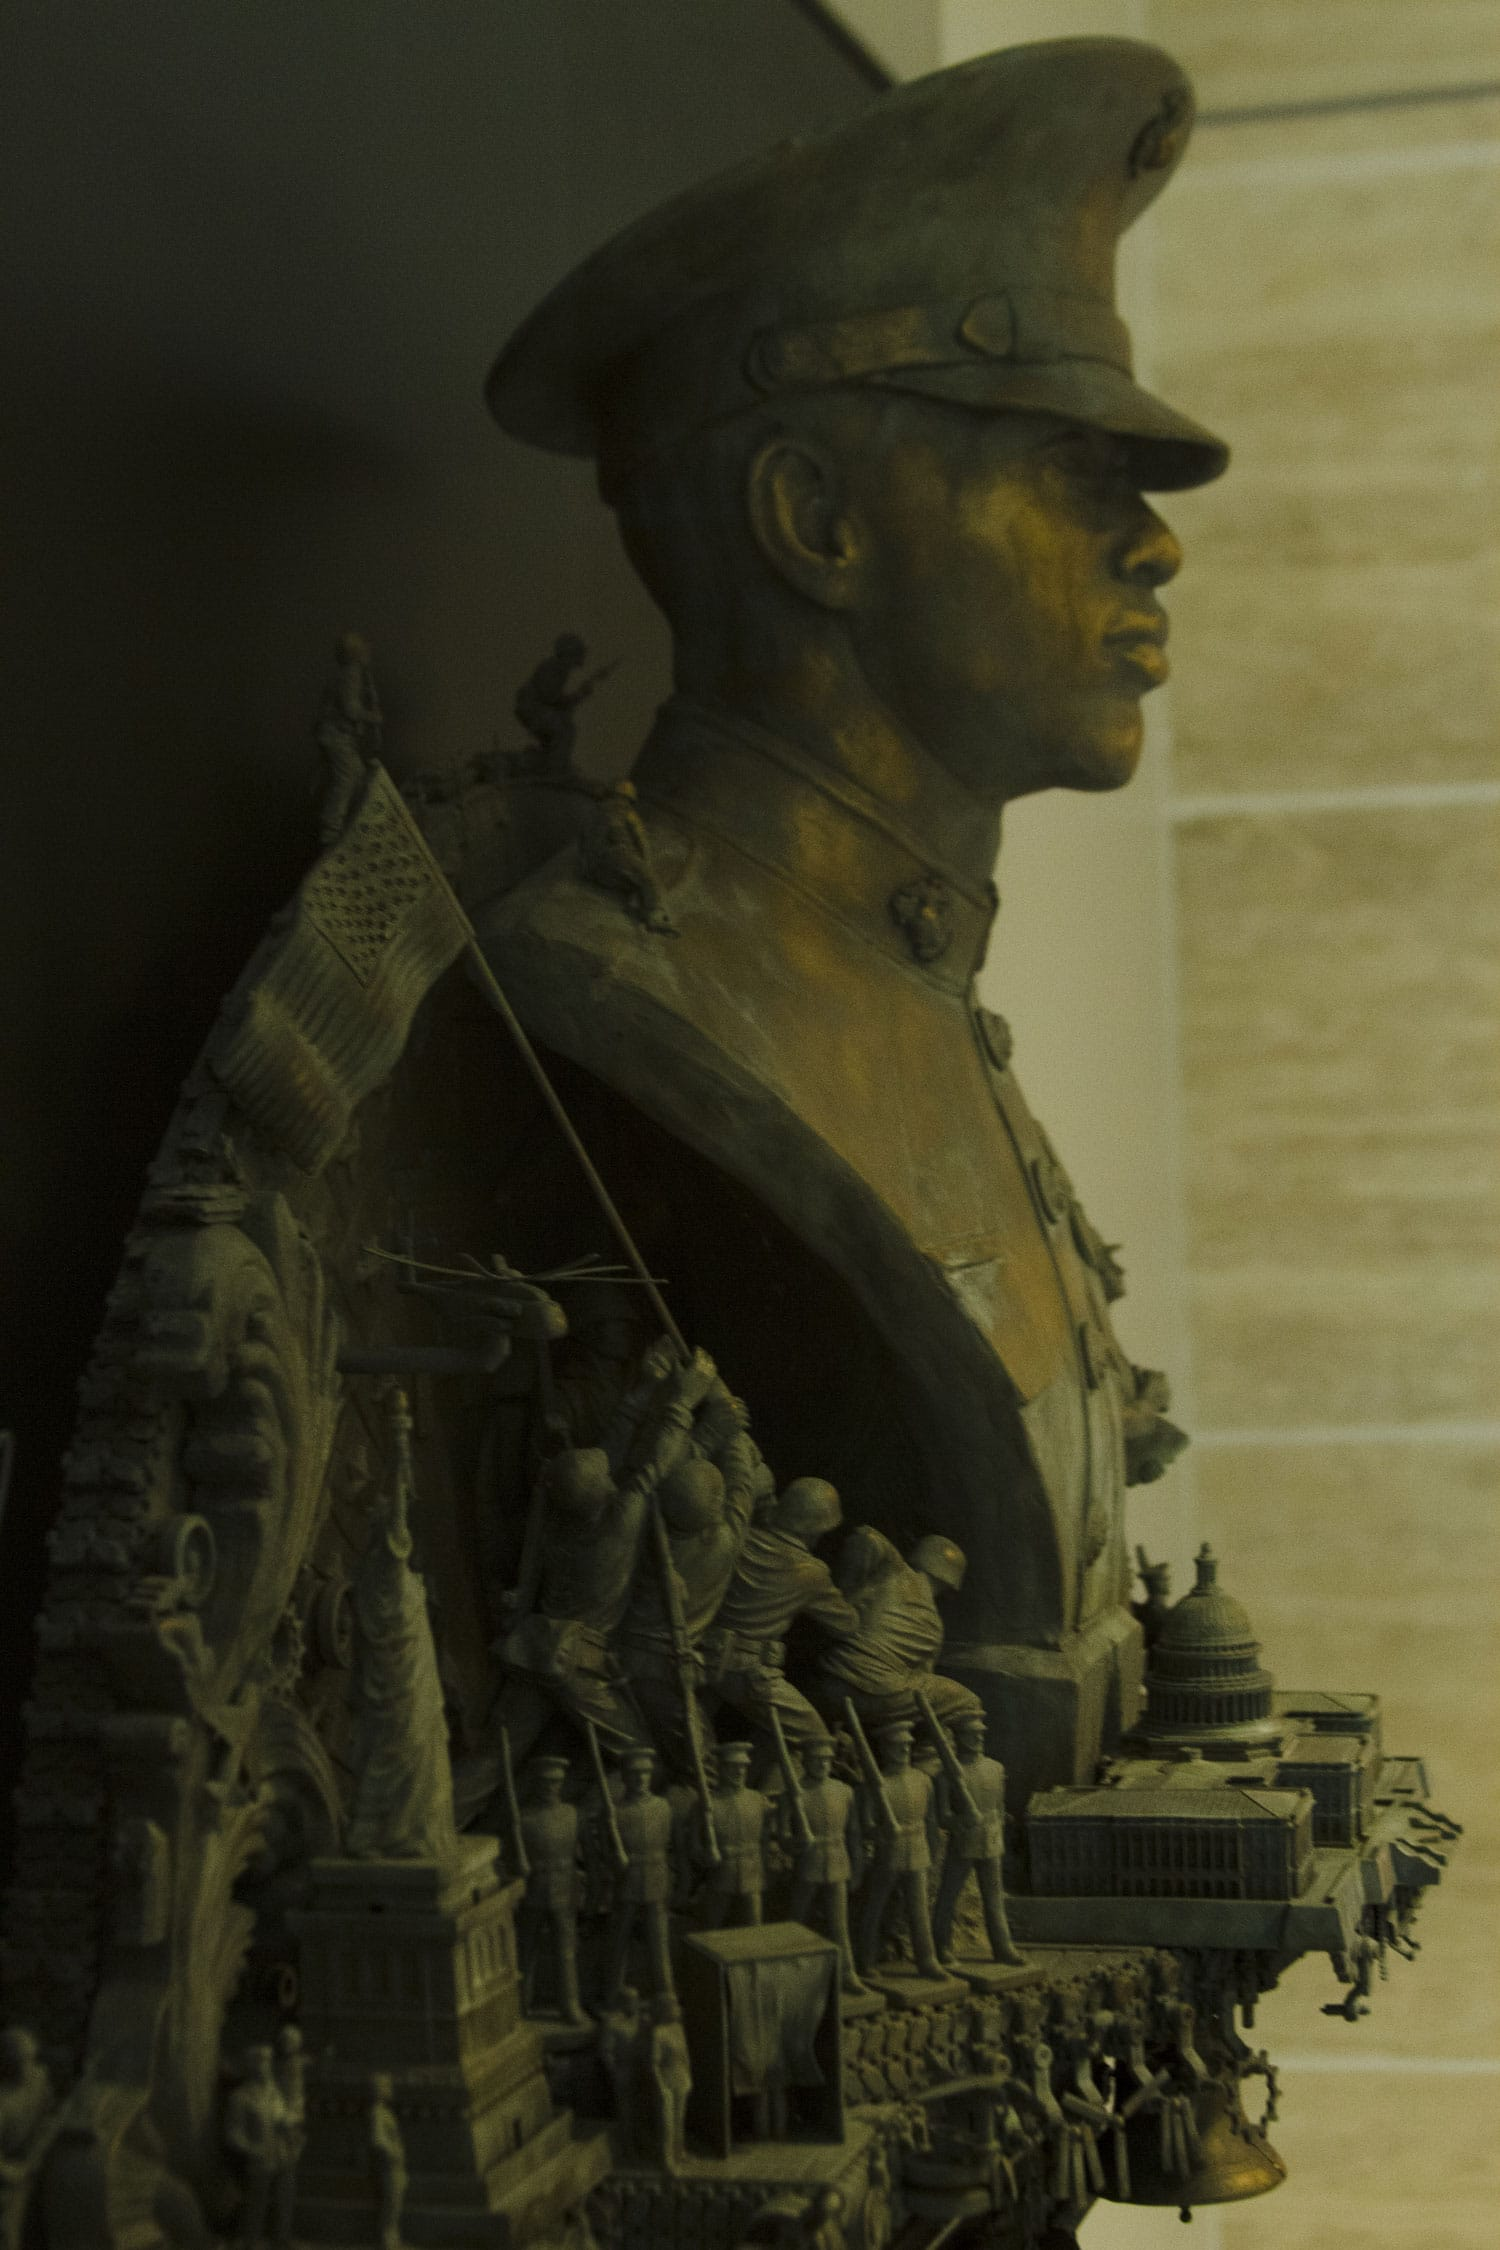 Marine Corps Nation's Call, one of three of Marine Corps Recruiting Command's statues, is unveiled at the National Marine Corps Museum in Triangle, Virginia